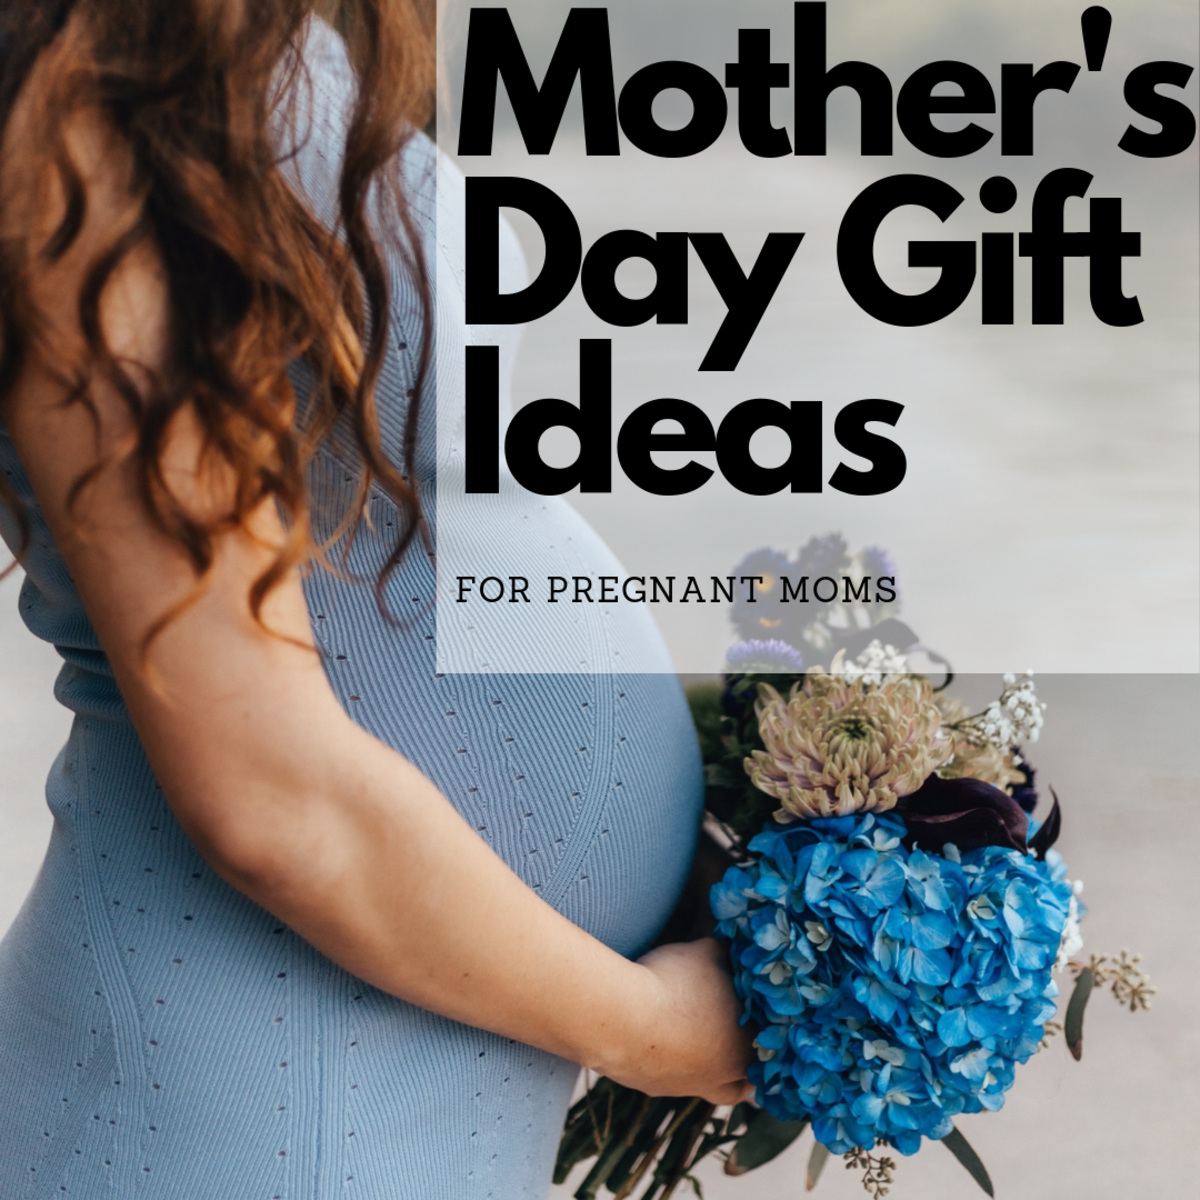 Mother's Day Gifts for Pregnant Moms